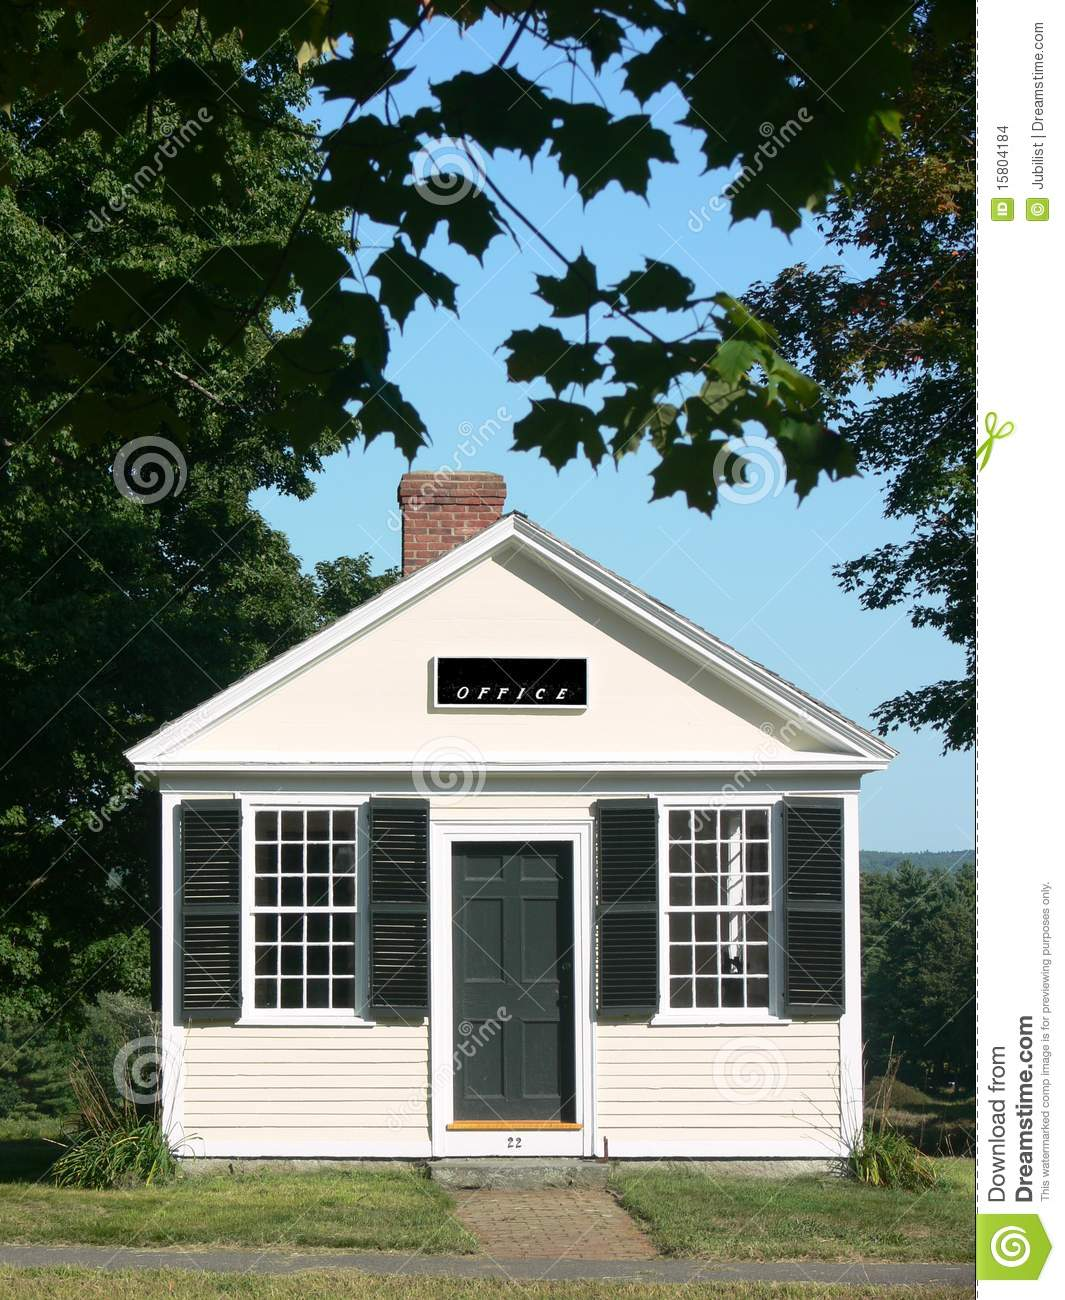 Small Town: Office Building And Trees Stock Images